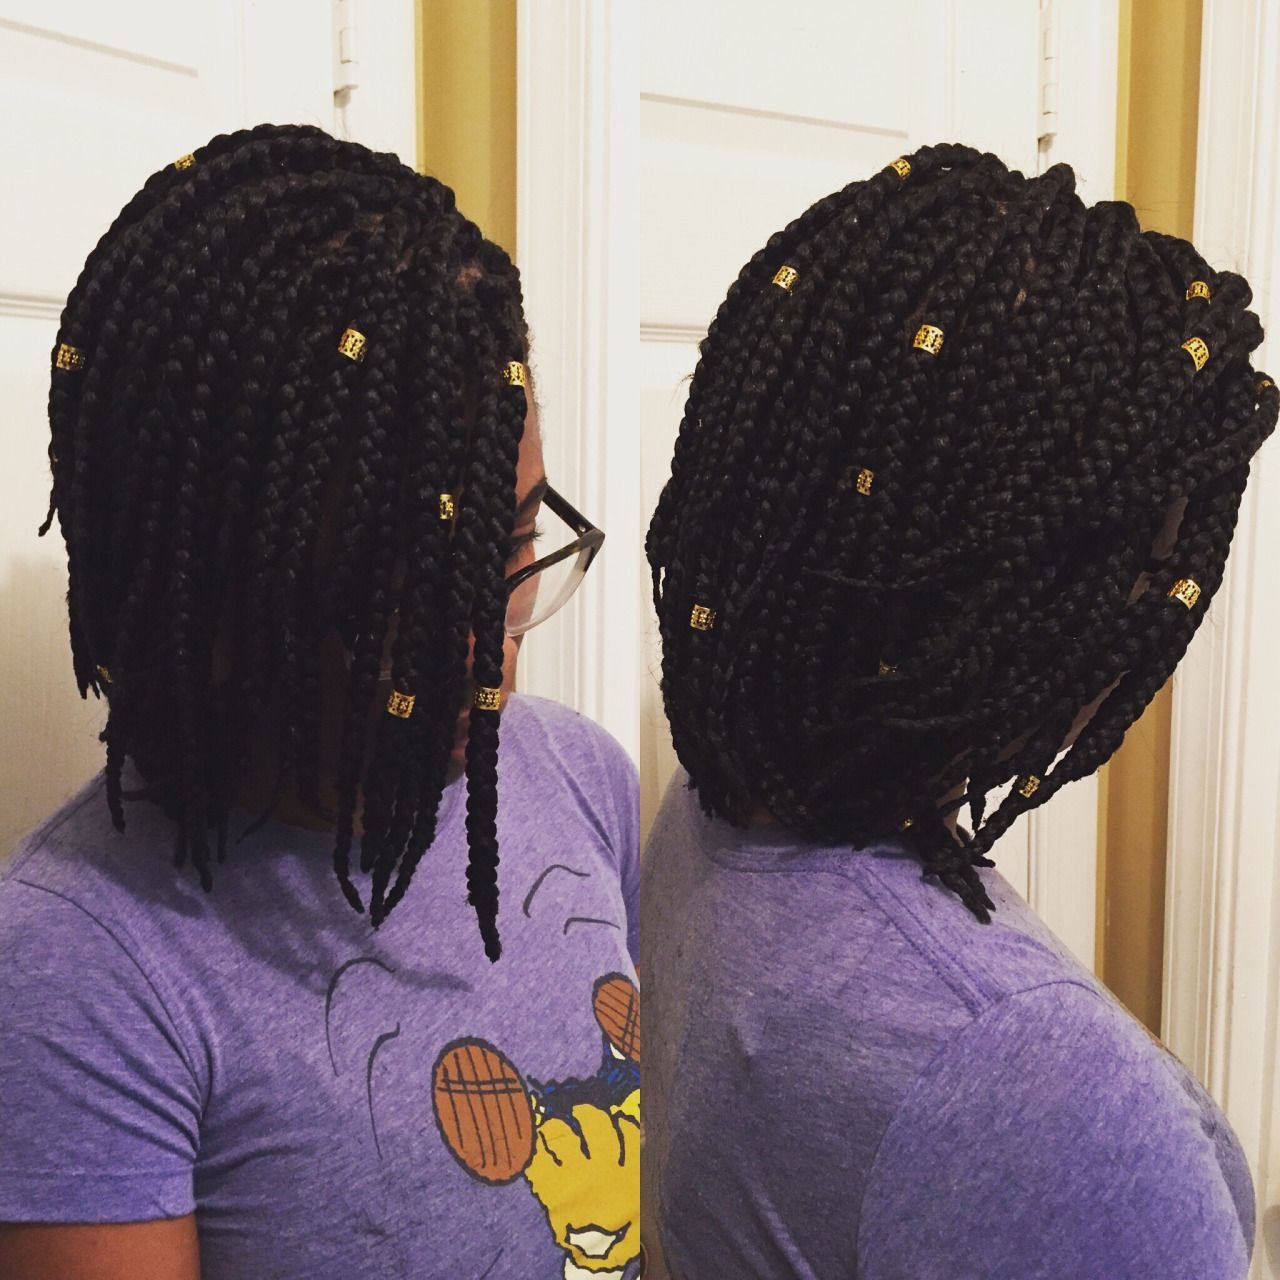 Herabstract boxbraids bobstyle on emmatchamba packs